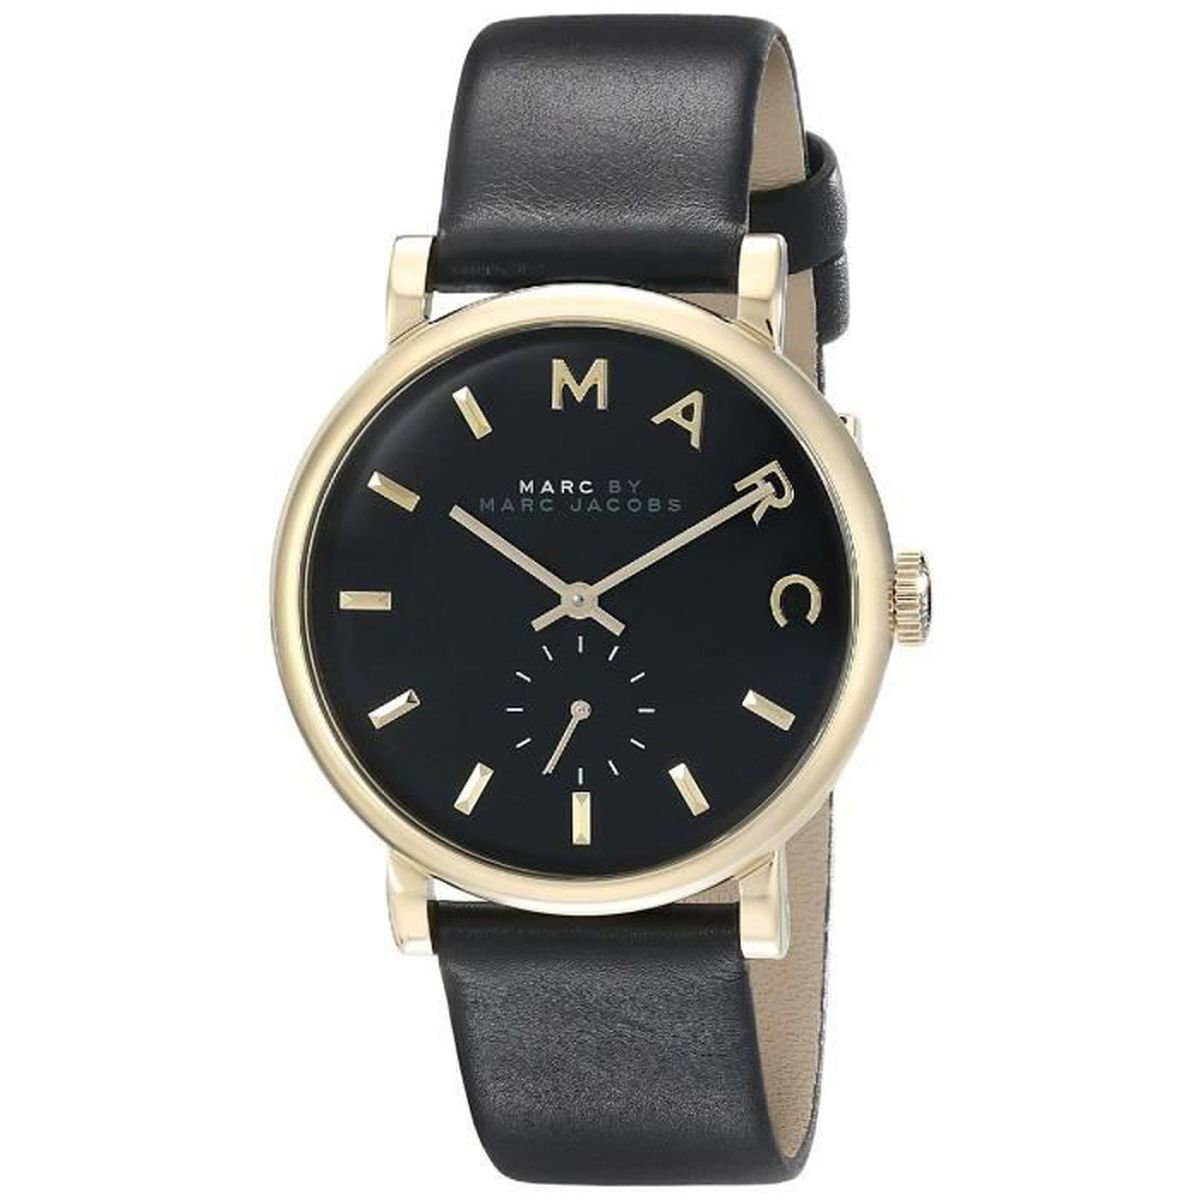 Noir By Femme Cuir Quartz Montre Marc Jacobs 36mm Bracelet E9WIDH2Y